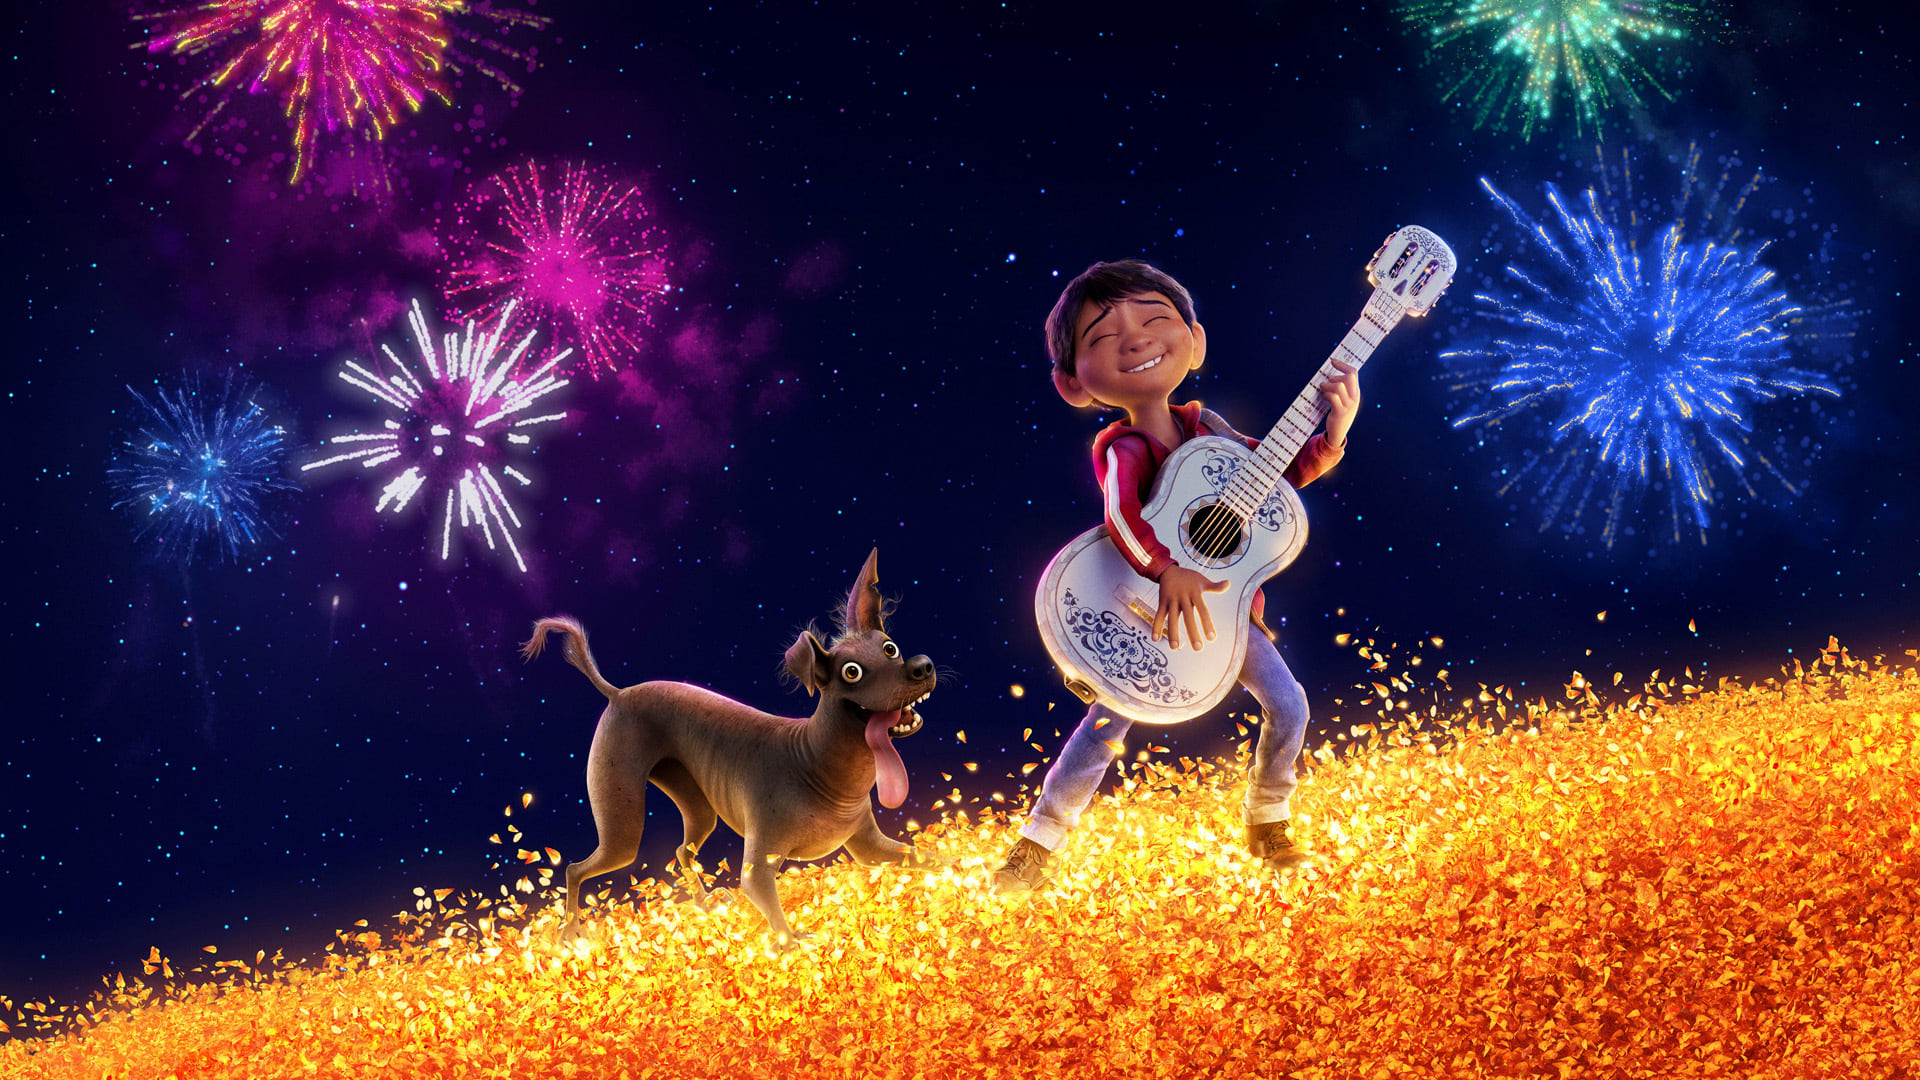 Watch Coco (2017) Full Movie Online Free   Movie & TV Online HD Quality